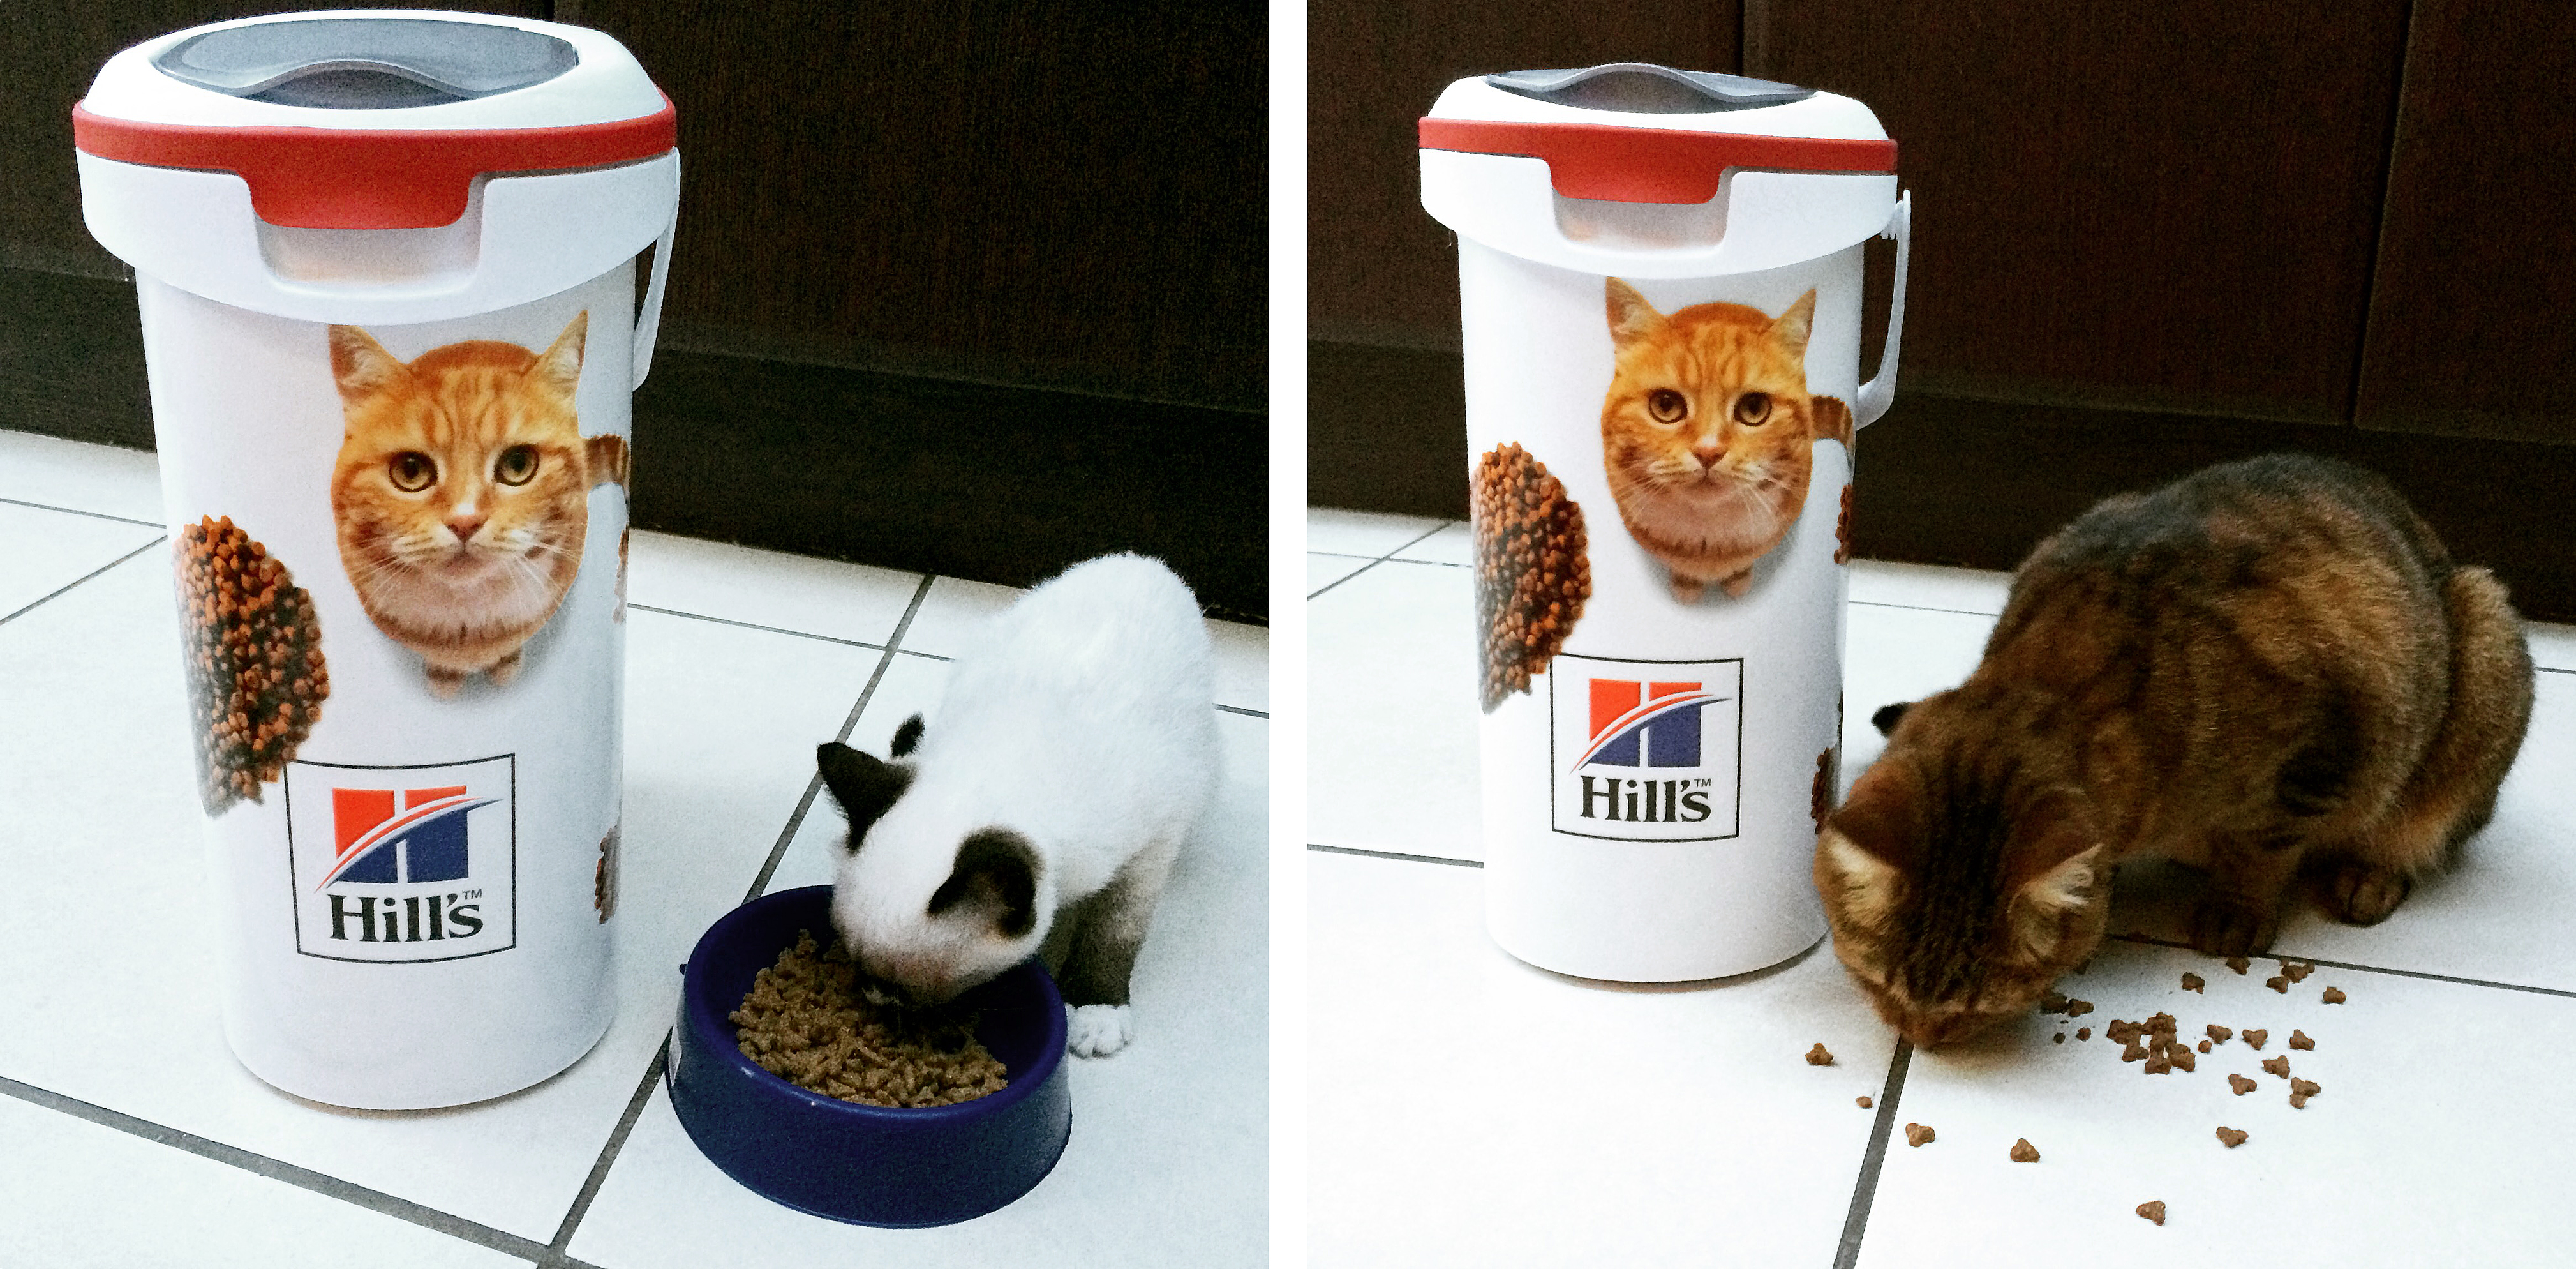 My cats Asterix (left) and Archimedes (right) enjoying their new Hill's Pet Nutrition Foodie Bin (pic taken with my iPhone)